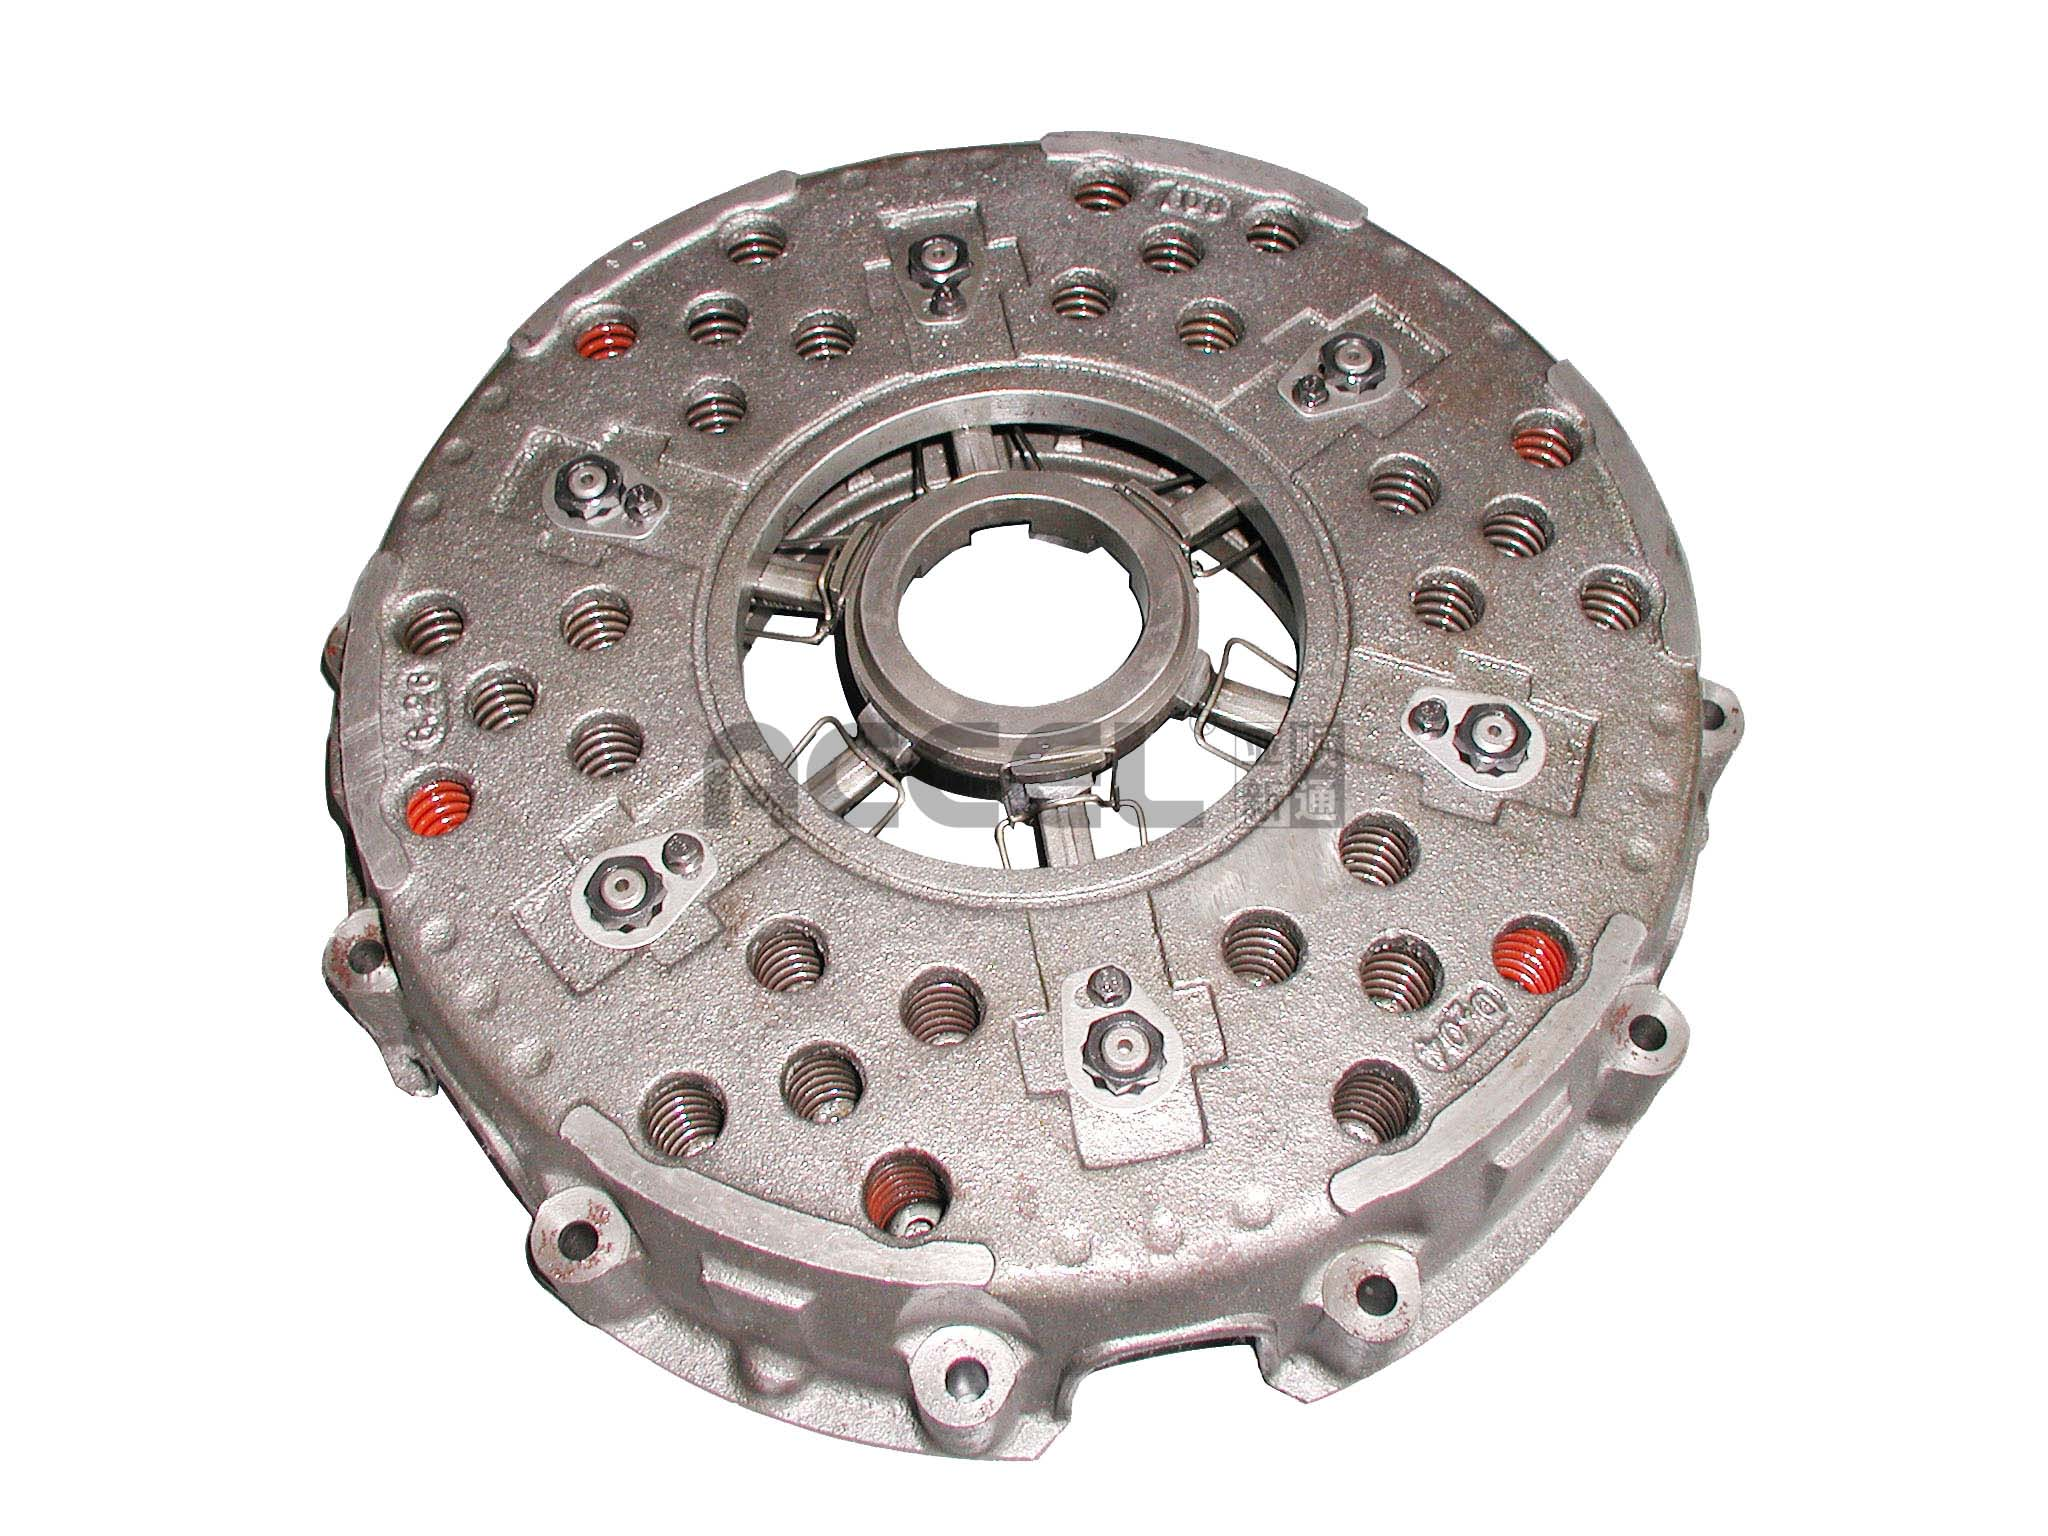 Clutch Cover/OE:1882 302 131/380*195*410/CBZ-003/MERCEDES BENZ/LY183/4206 3032/003 250 2704